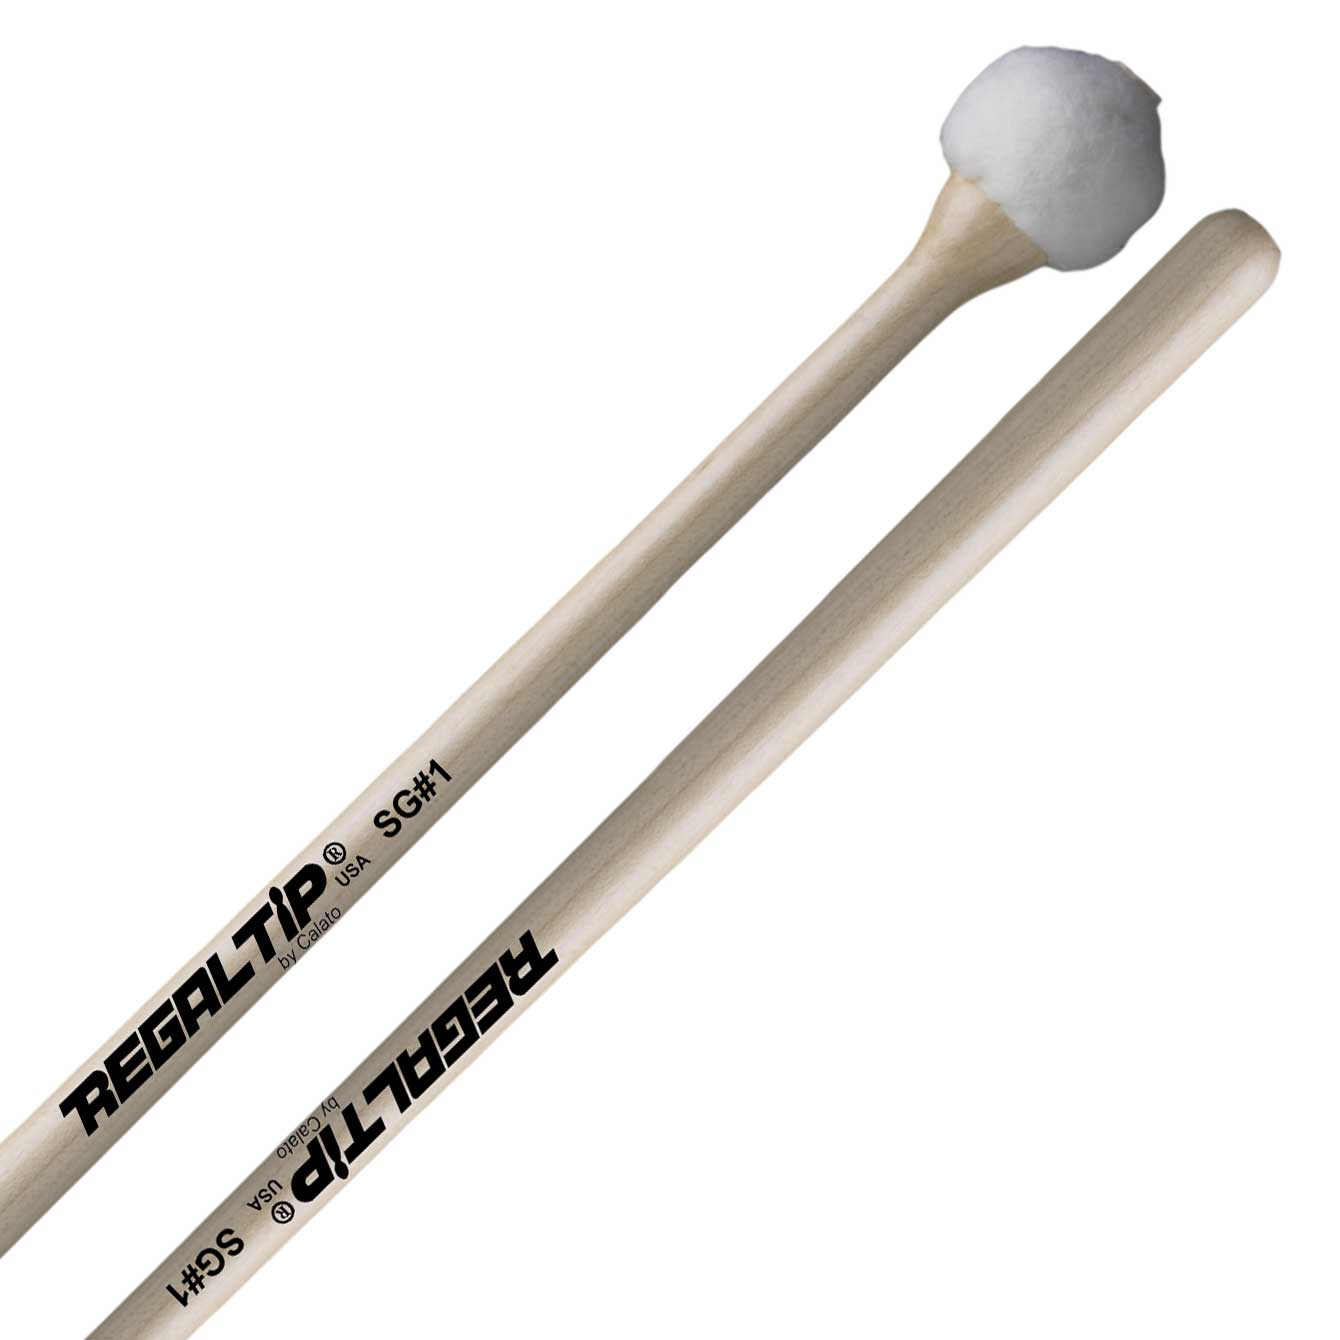 Regal Tip Saul Goodman Signature #1 Hard Timpani Mallets